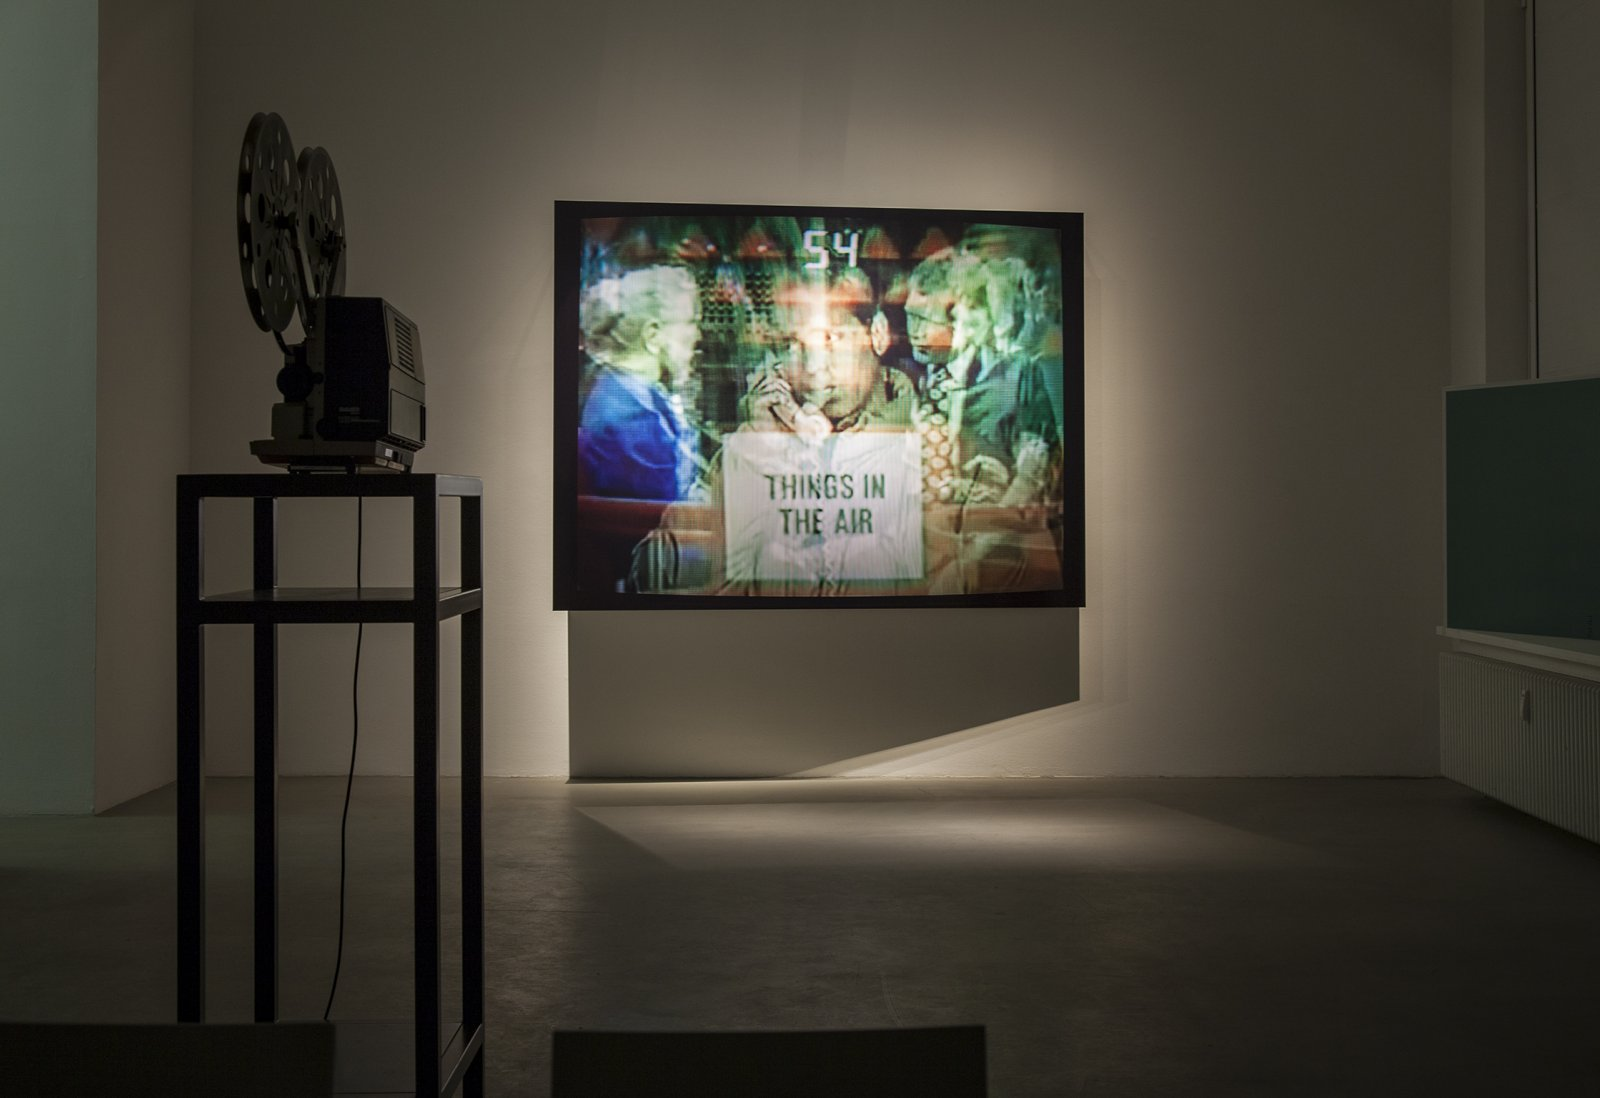 Judy Radul, installation view, This is Television, daadgalerie, Berlin, 2013 by Judy Radul